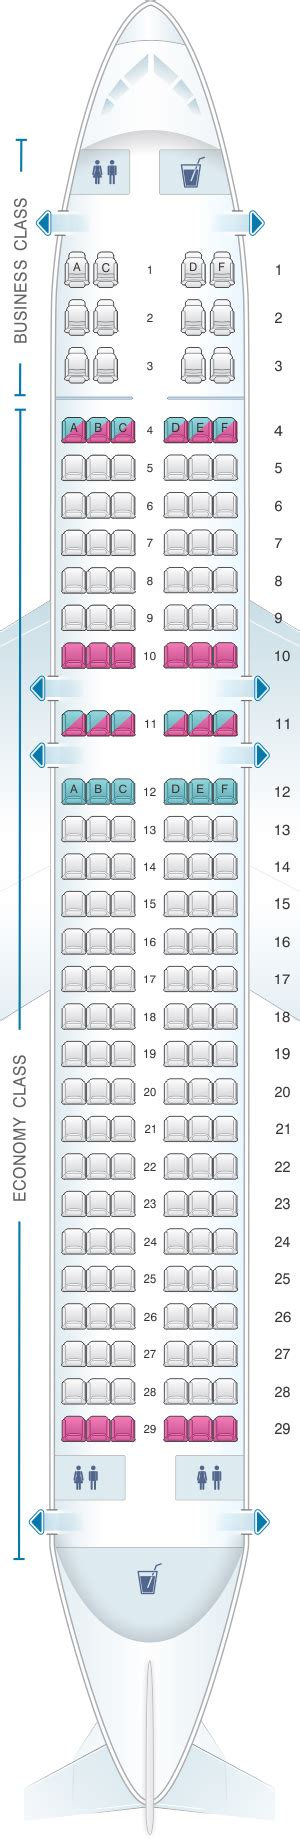 airbus a320 sieges seat map brussels airlines airbus a320 seatmaestro